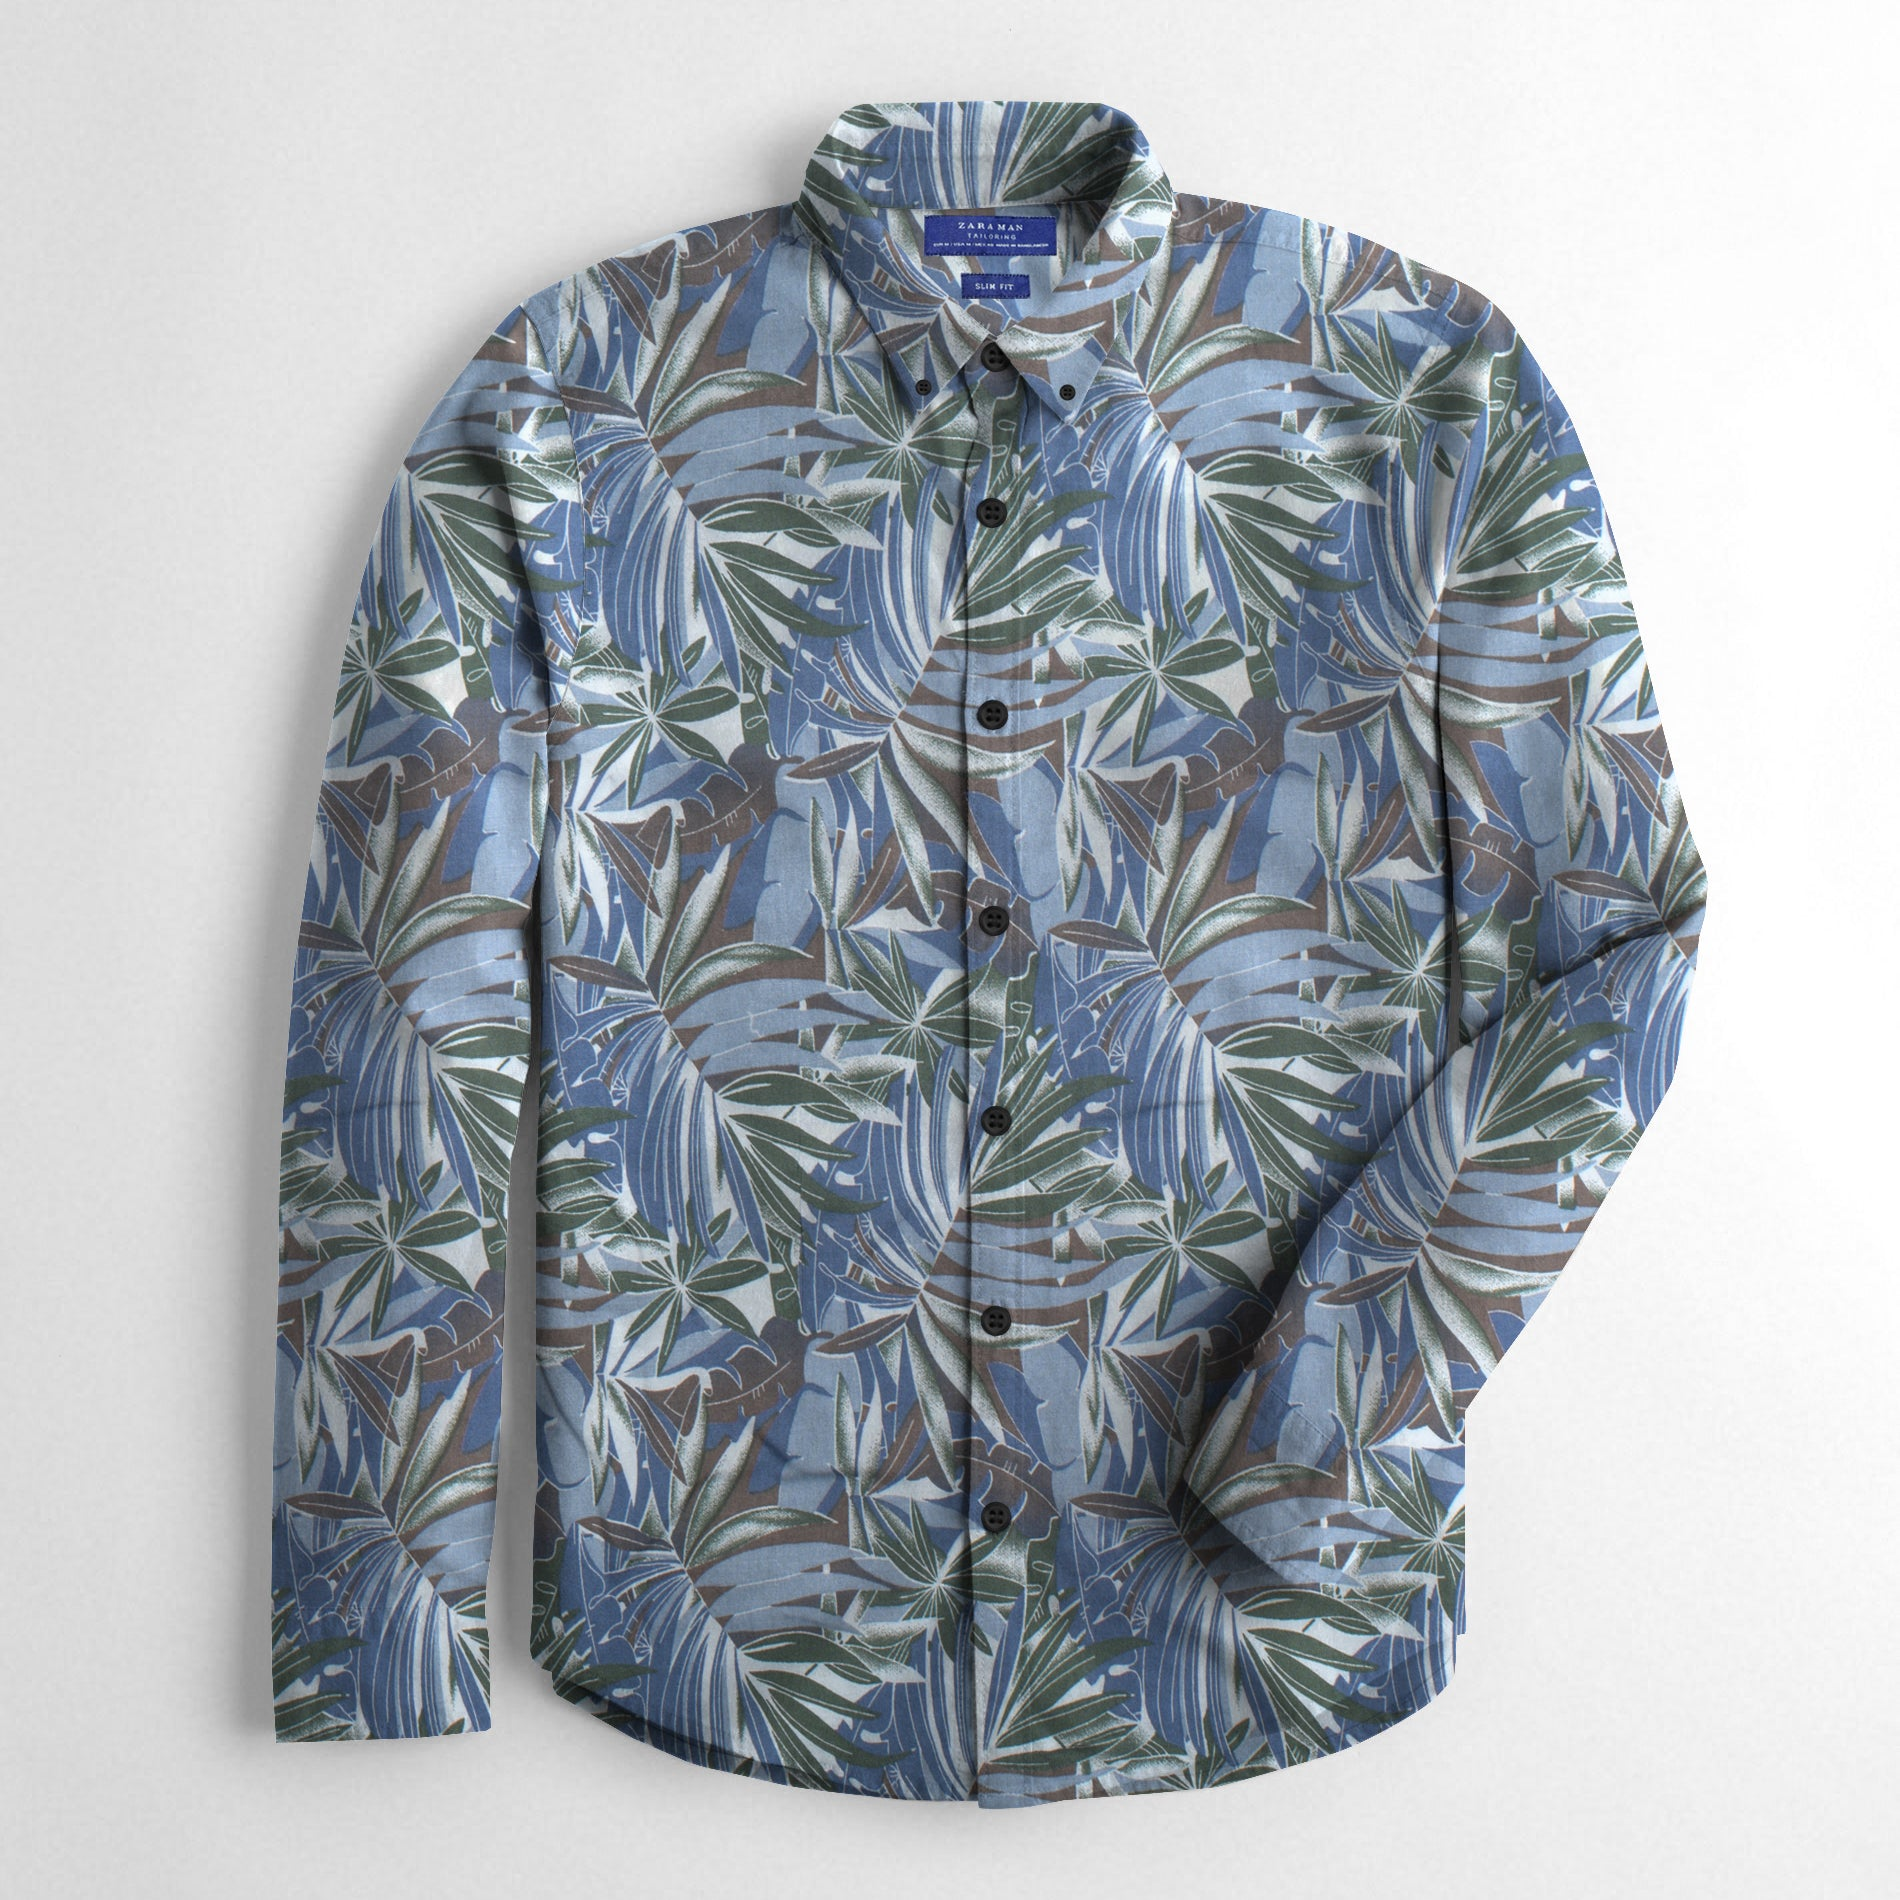 ZM Premium Slim Fit Casual Shirt For Men-Allover Leaf Print-BE12510